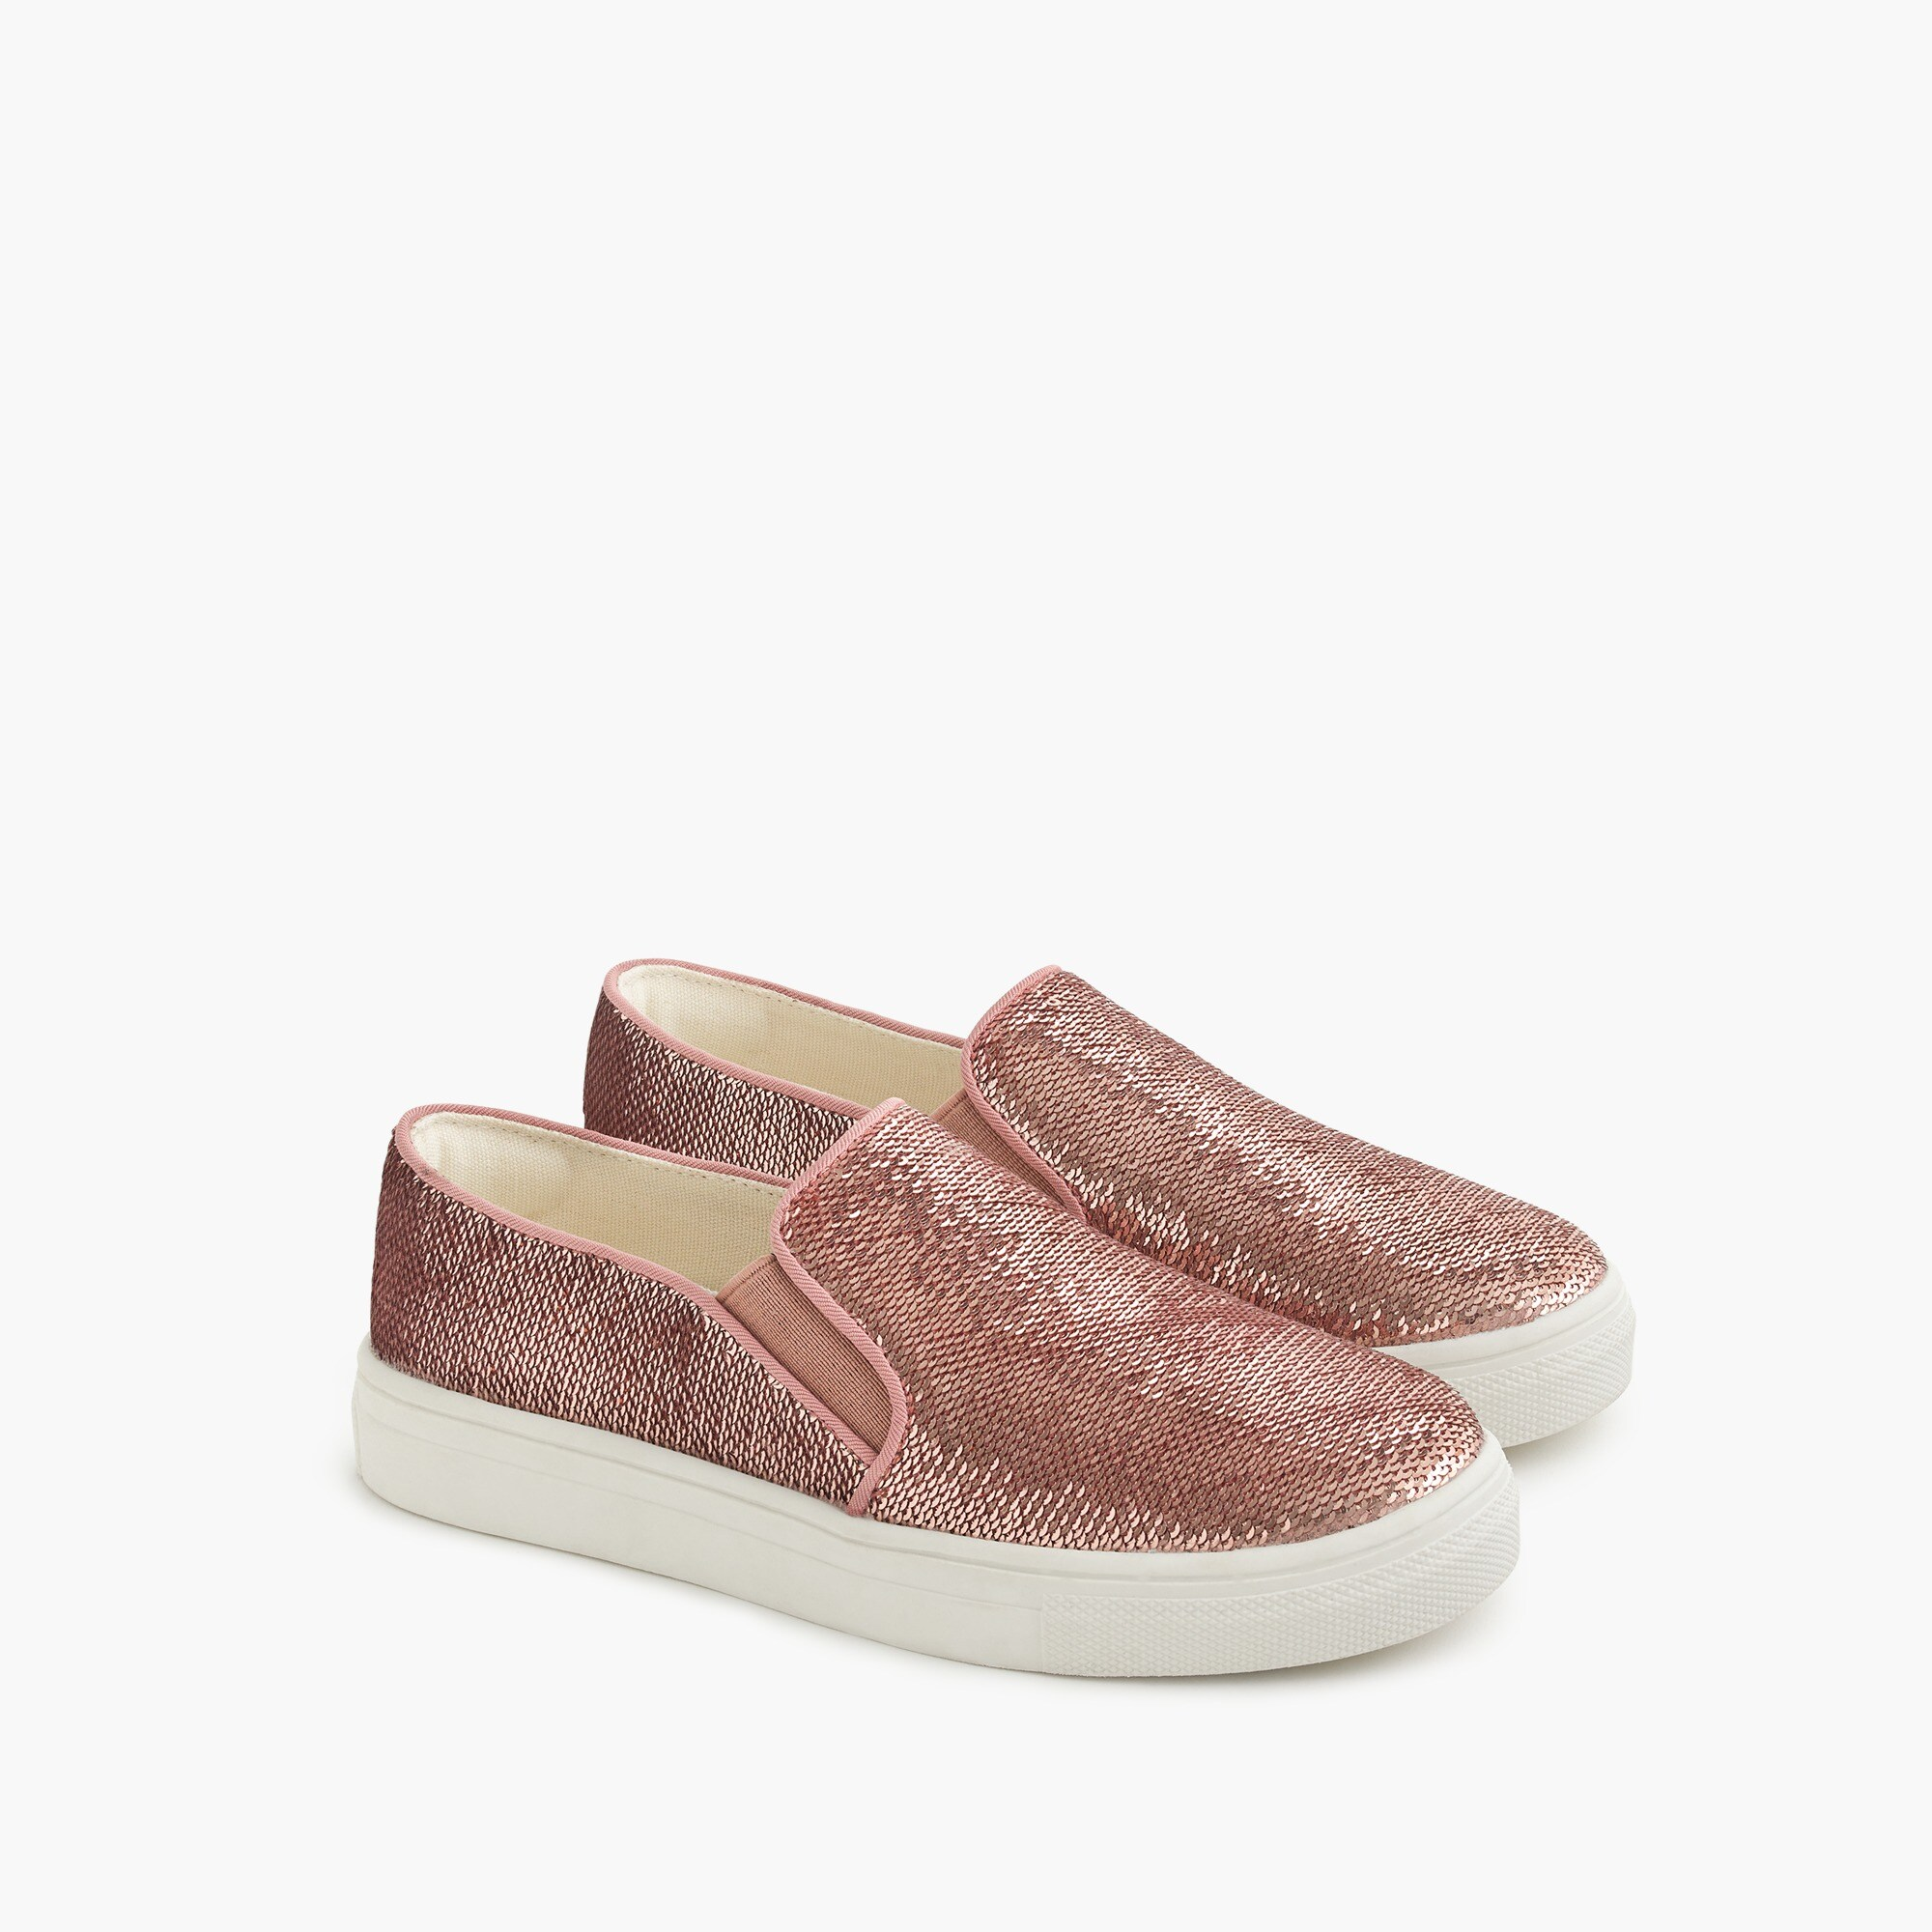 Girls' sequined slip-on sneakers